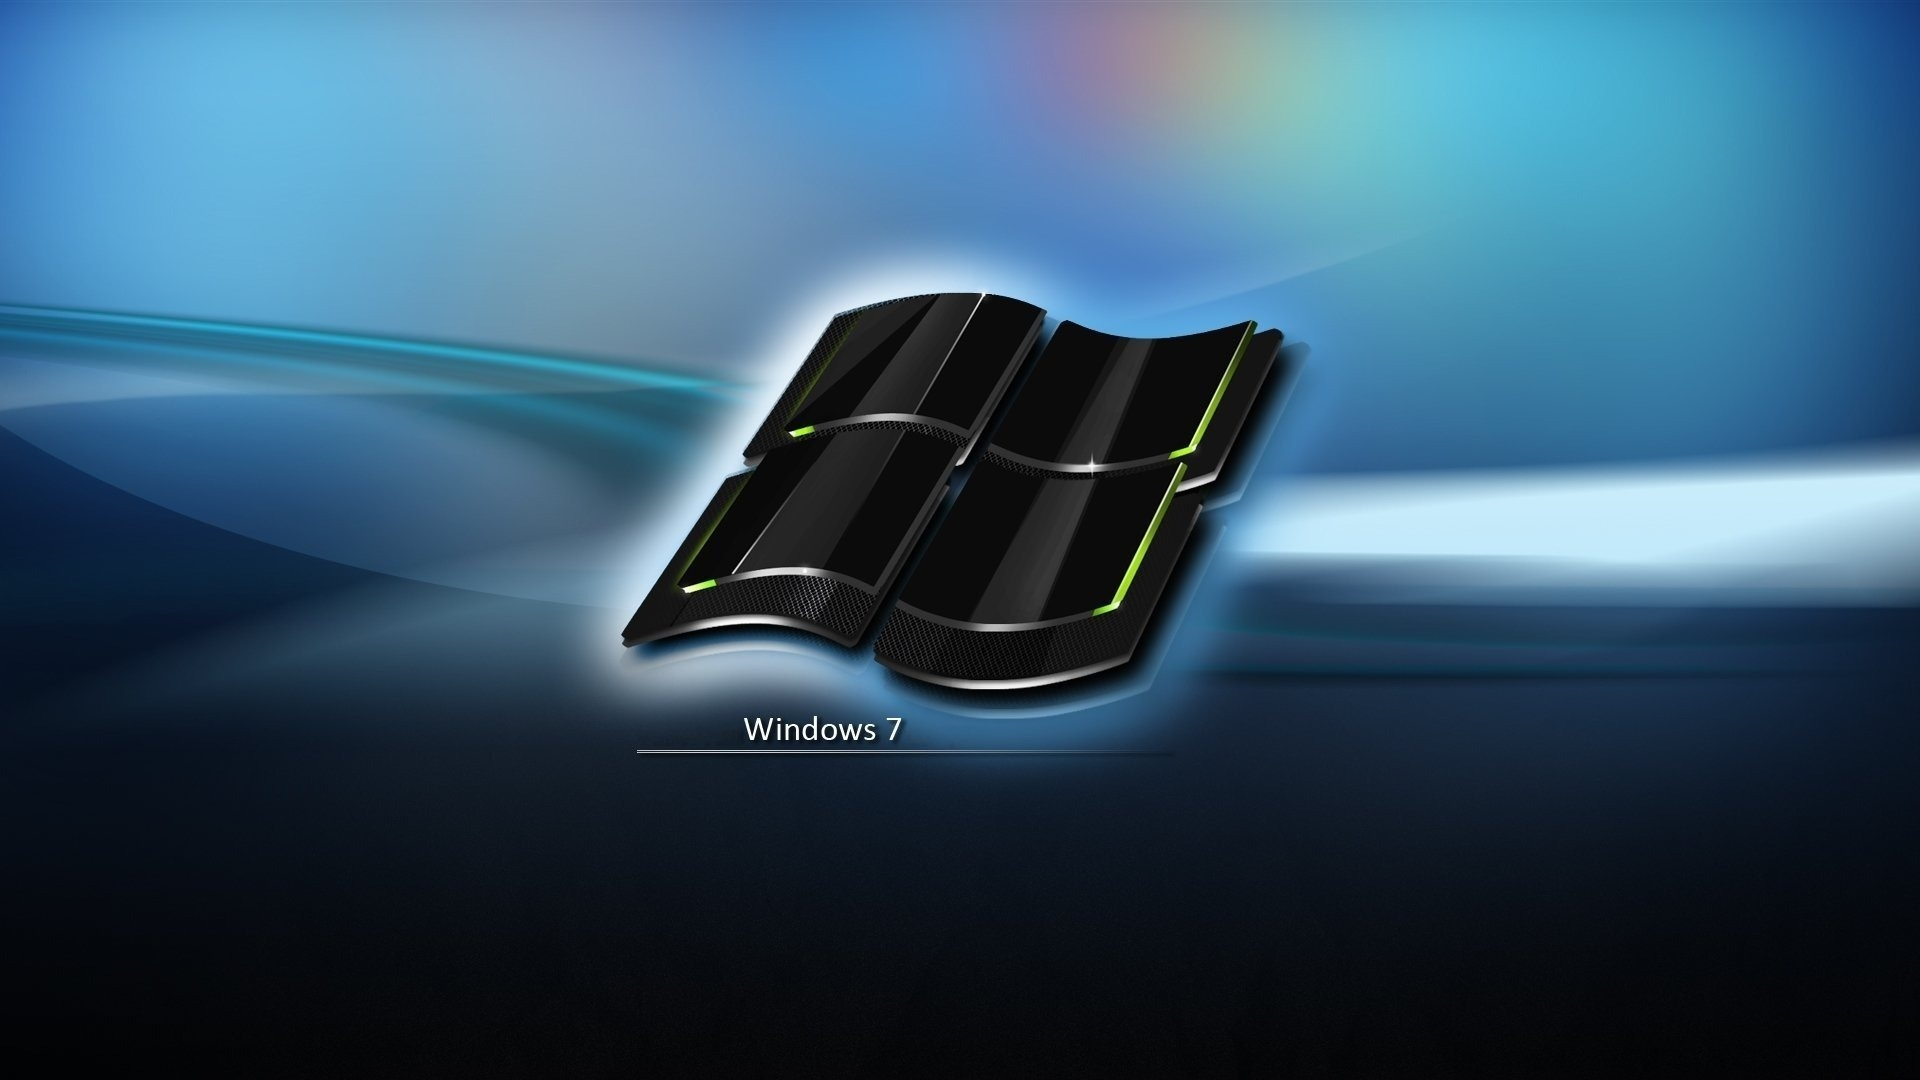 download wallpaper 1920x1080 windows 7, black, blue, icon, logo full